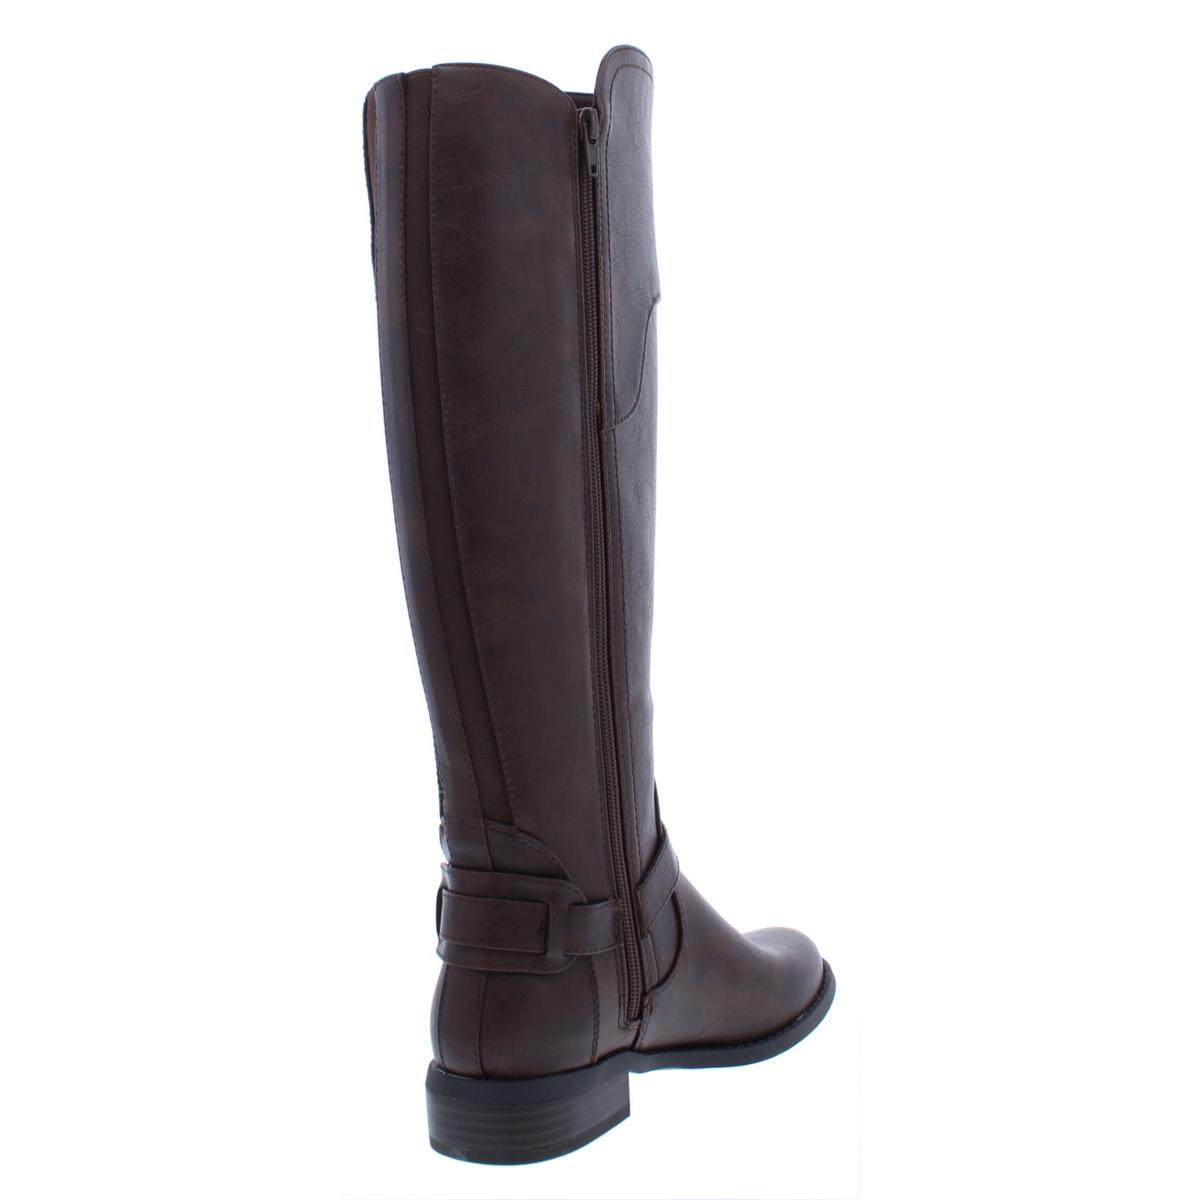 874884c1b14 G by GUESS Harson Wide Calf Flat Knee-high BOOTS Dark Brown 5.5 US ...